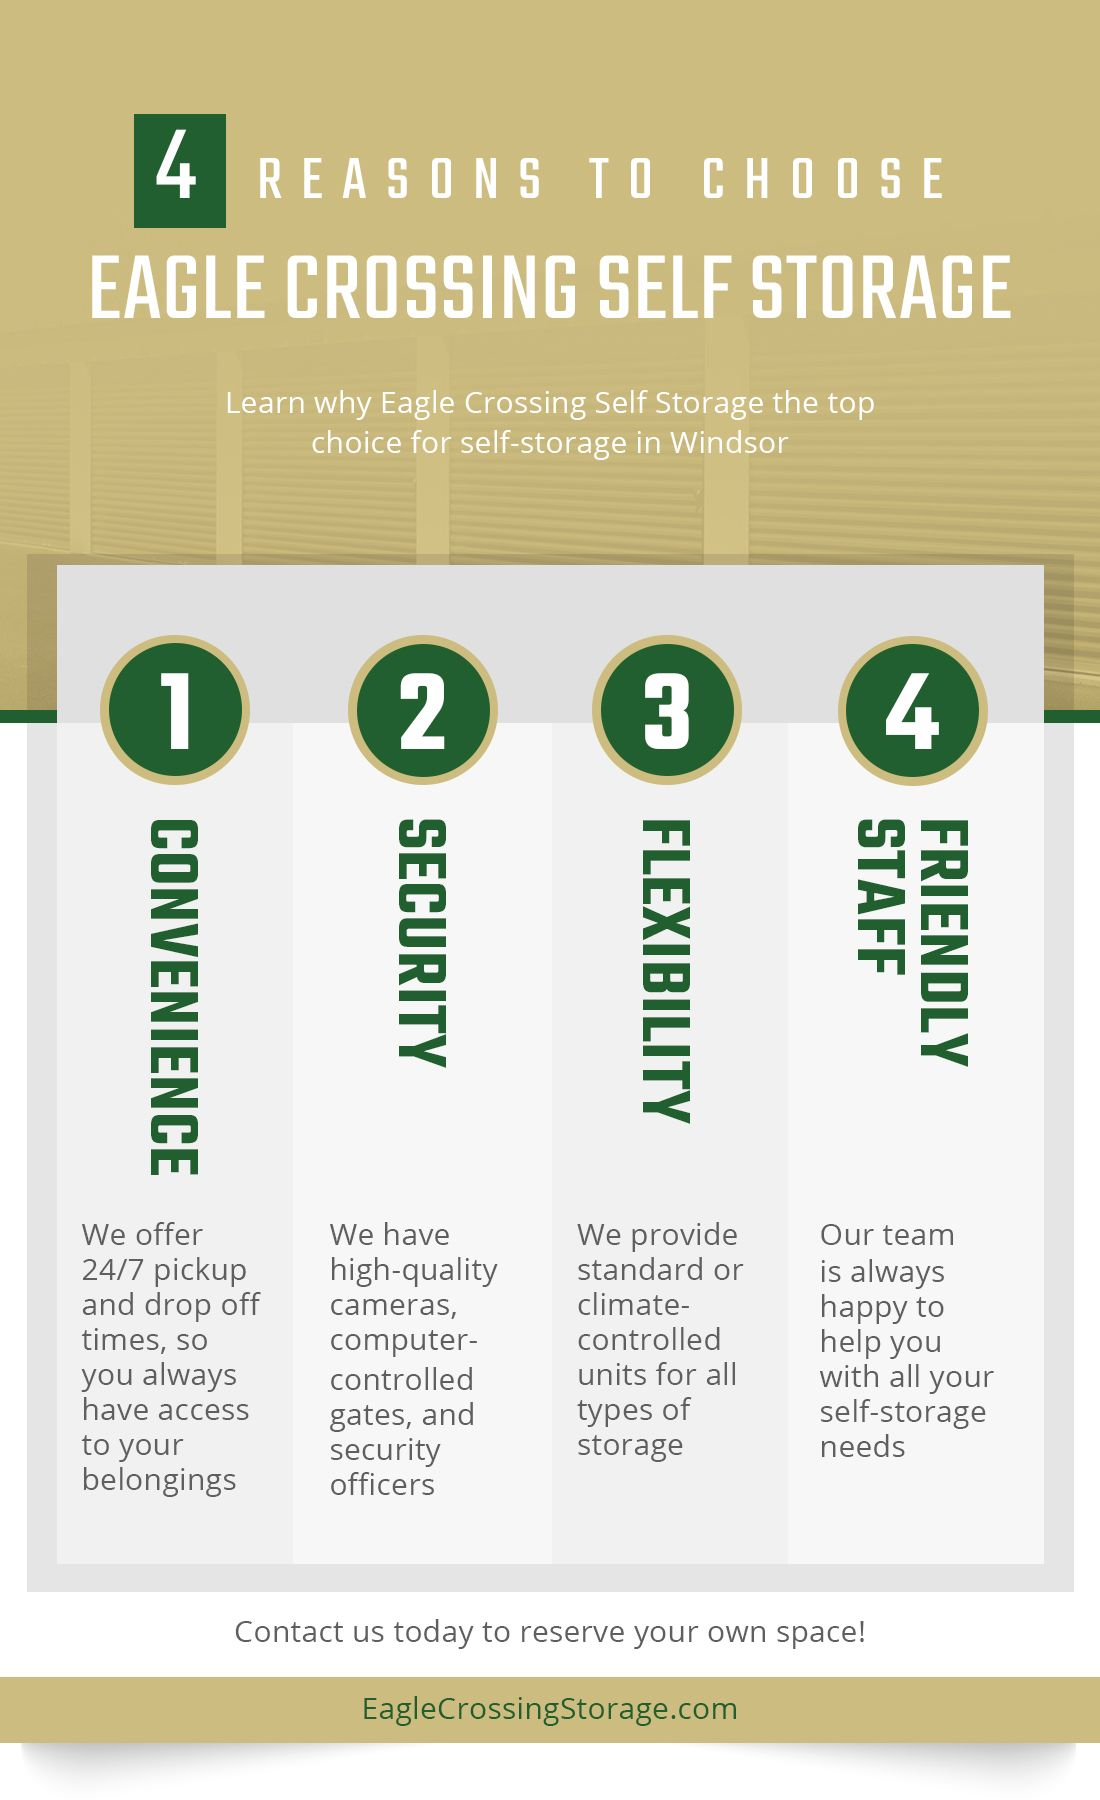 Reasons To Choose Eagle Crossing Self Storage Infographic